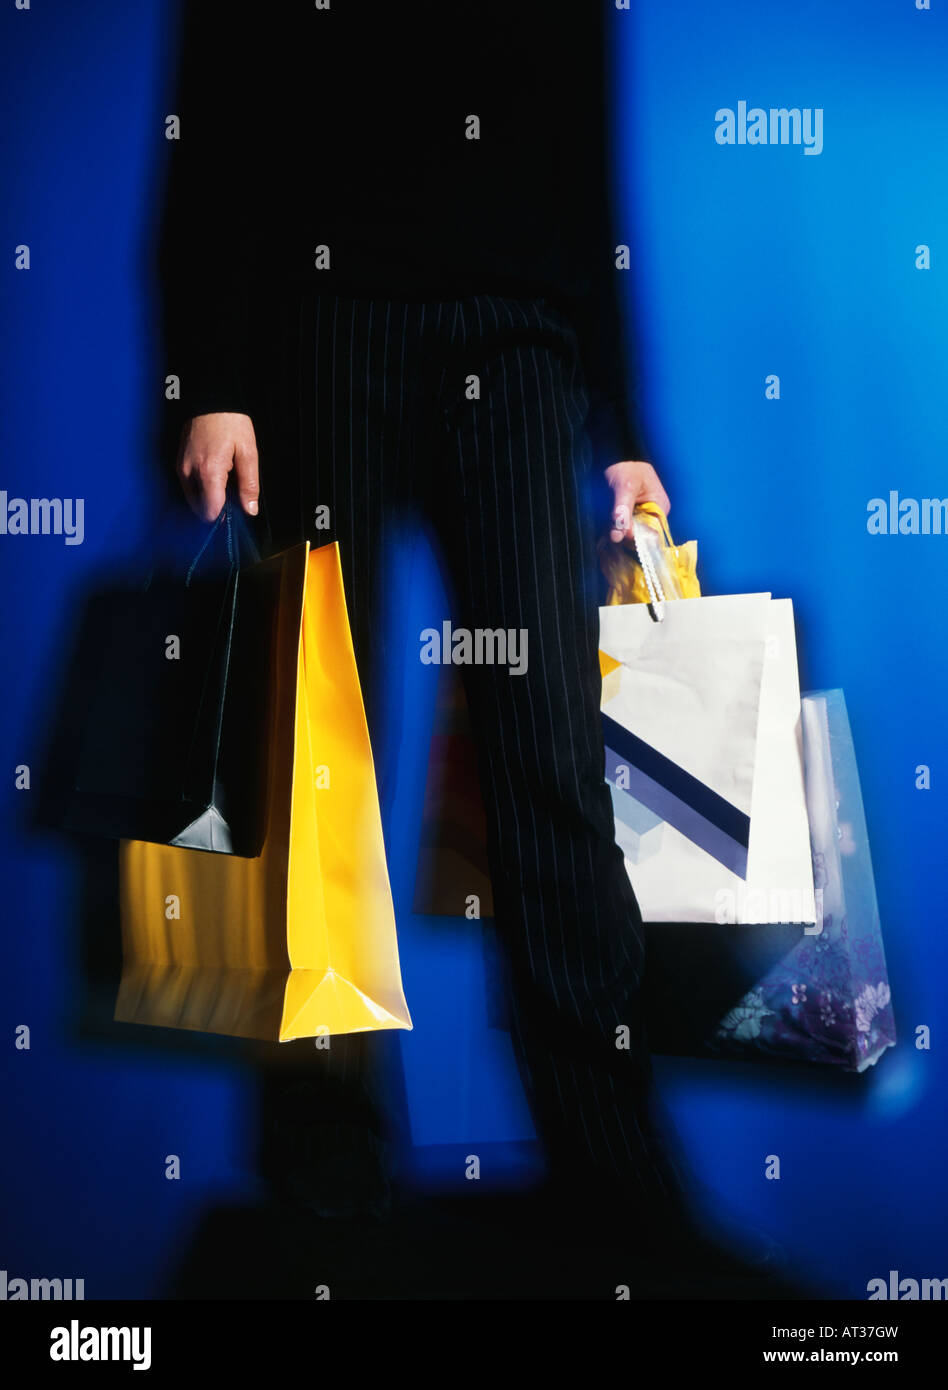 A man carrying shopping bags - Stock Image